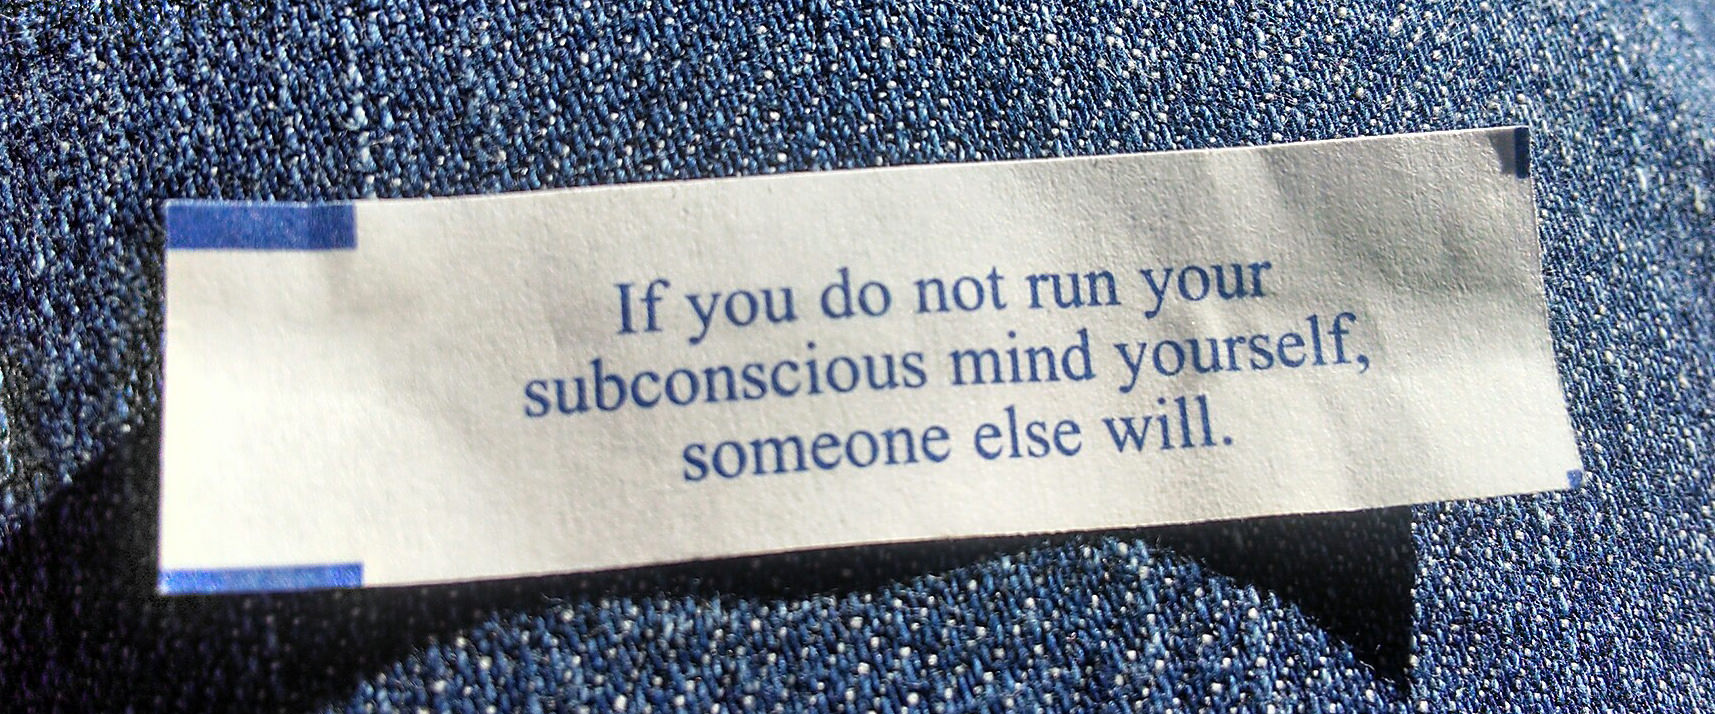 Quotes And Sayings: 20 Inspirational Fortune Cookie Quotes On Life For